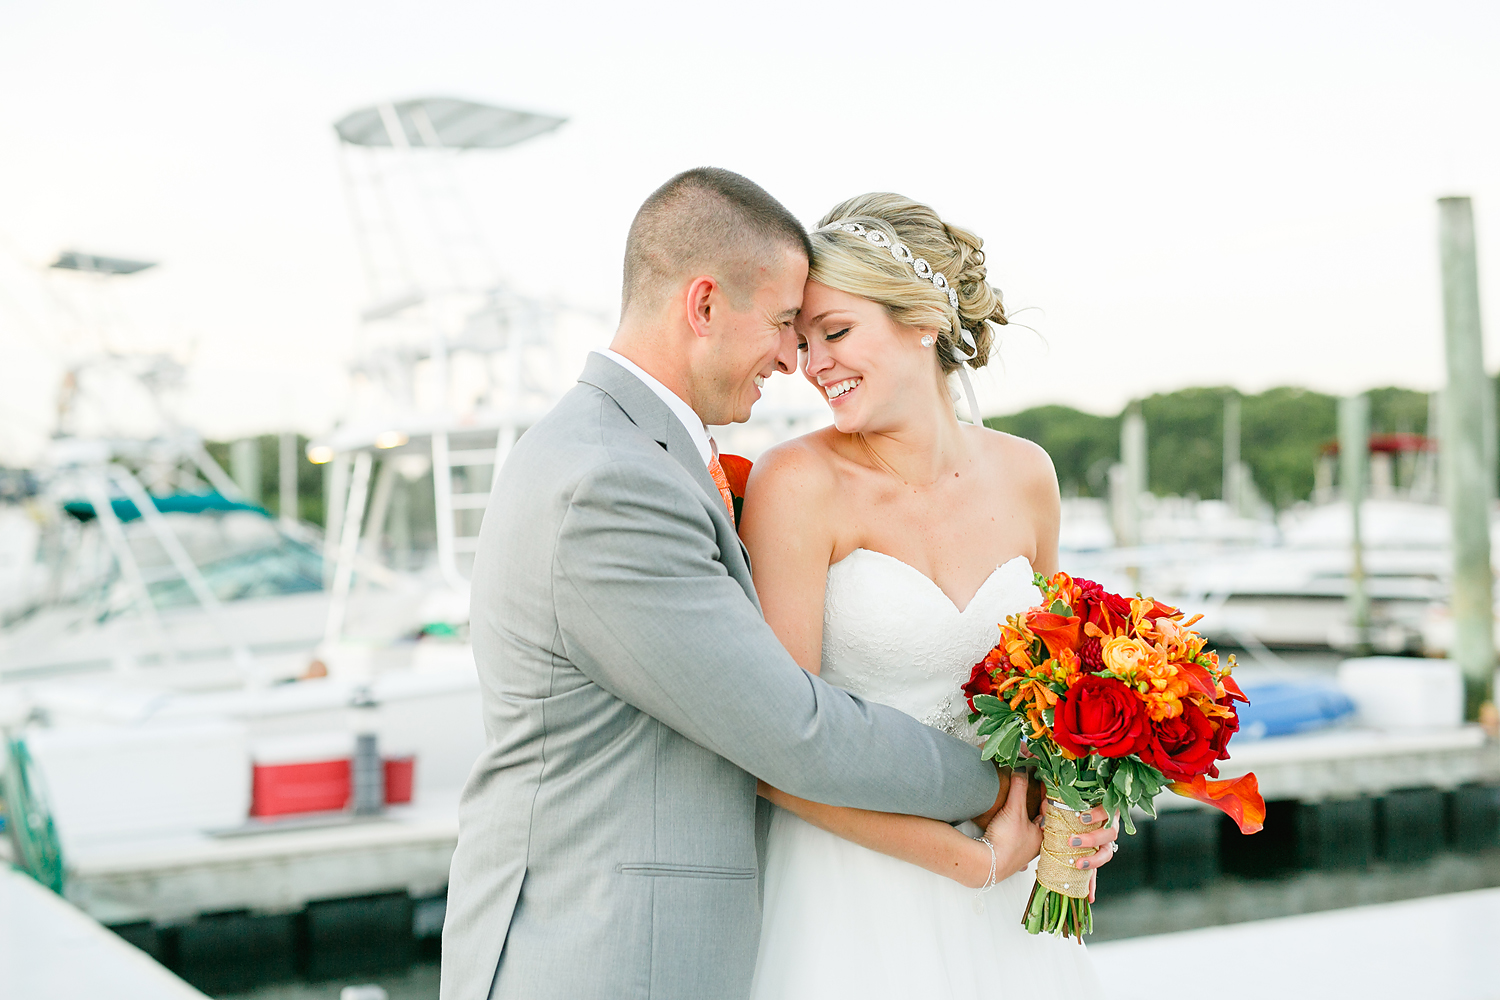 Wedding-Photographers-In-Newport-RI-32.jpg